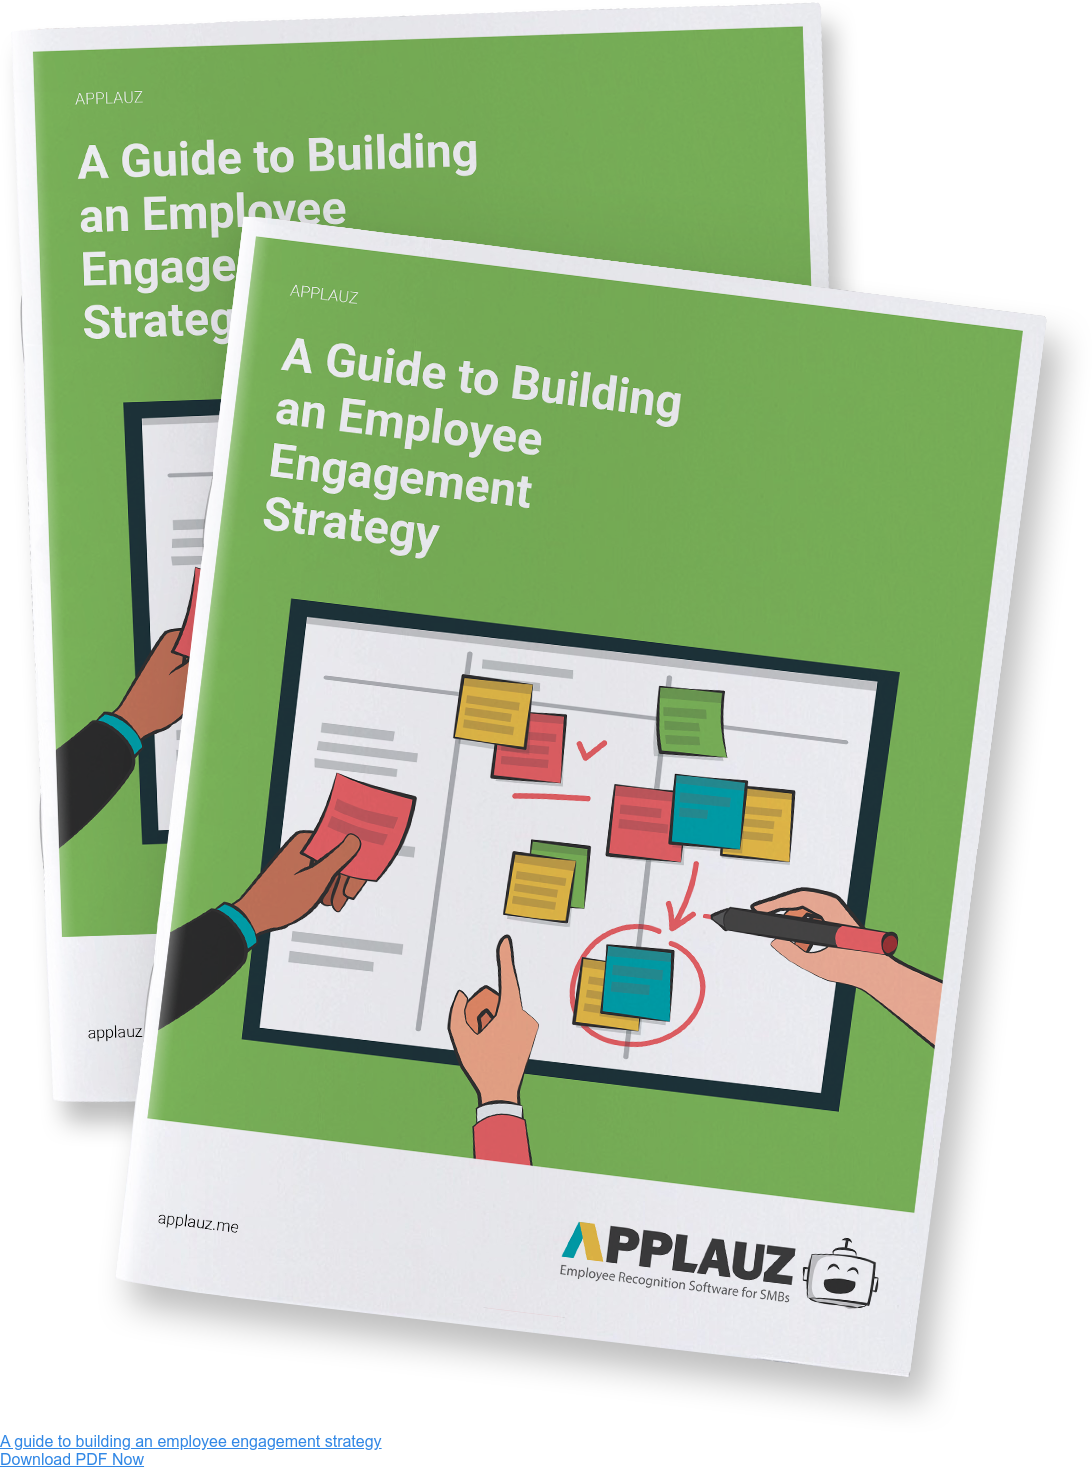 A guide to building an employee engagement strategy Download PDF Now